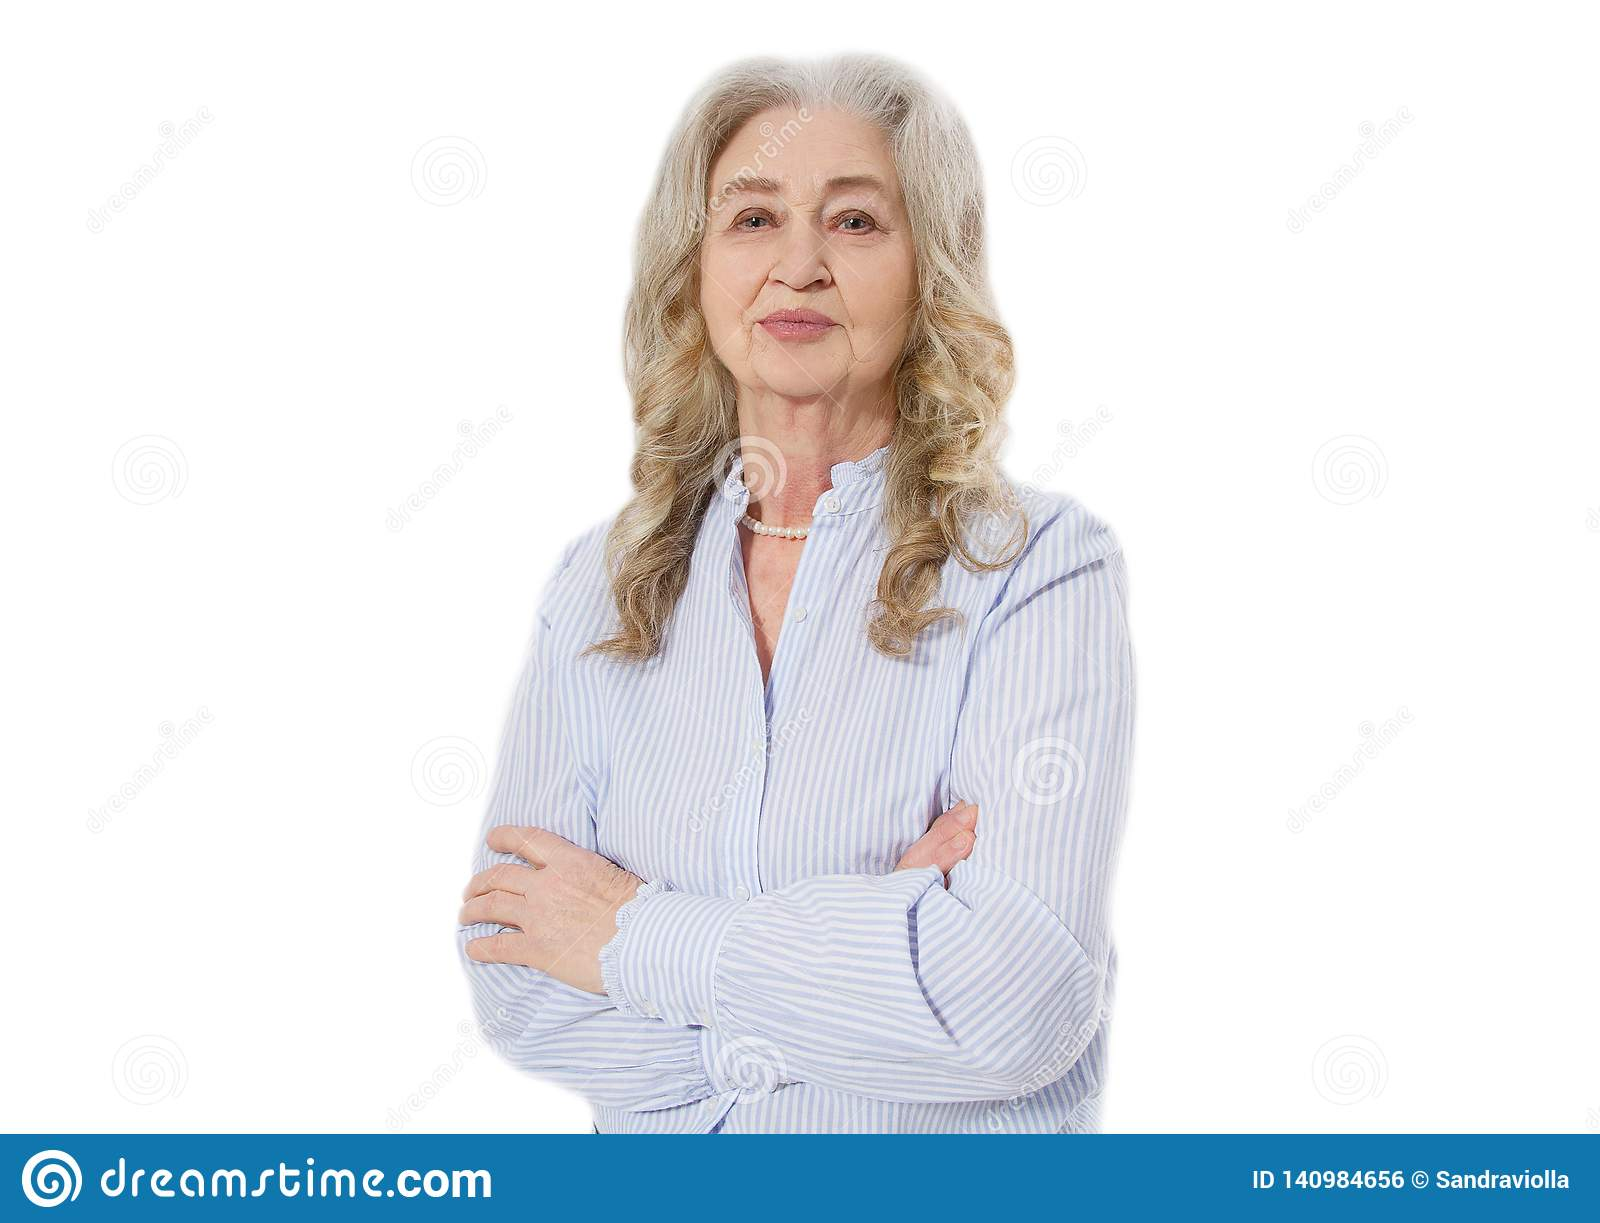 Senior woman with wrinkle face isolated on white background. Mature healthy lady. Copy space. Seniors lifestyle and old people